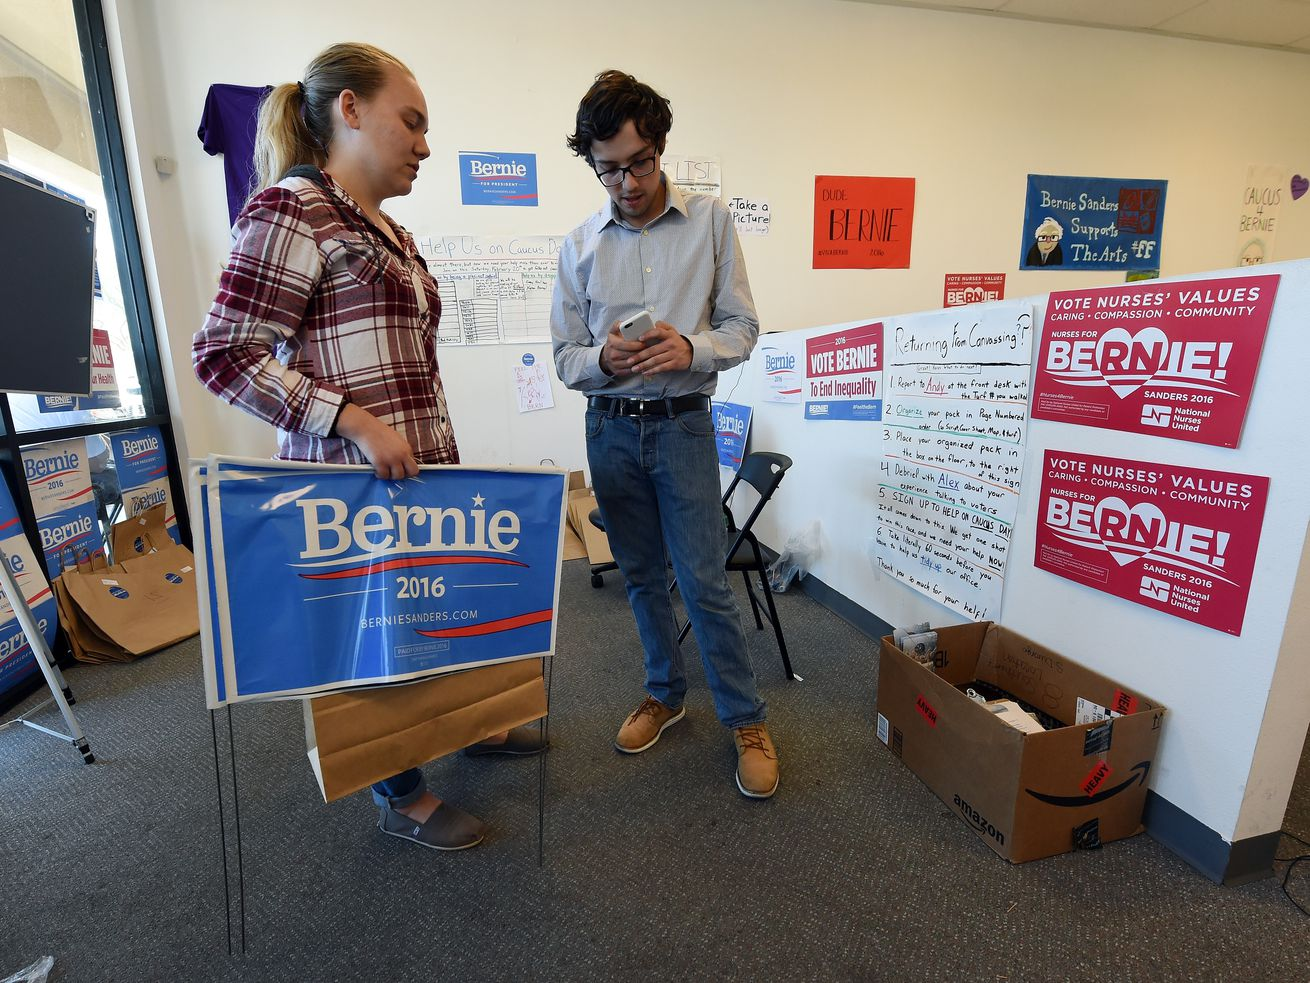 Precinct captain Allison Balden gets materials from field organizer Jonathan Mason at a campaign office for Bernie Sanders on February 19, 2016, in Henderson, Nevada.